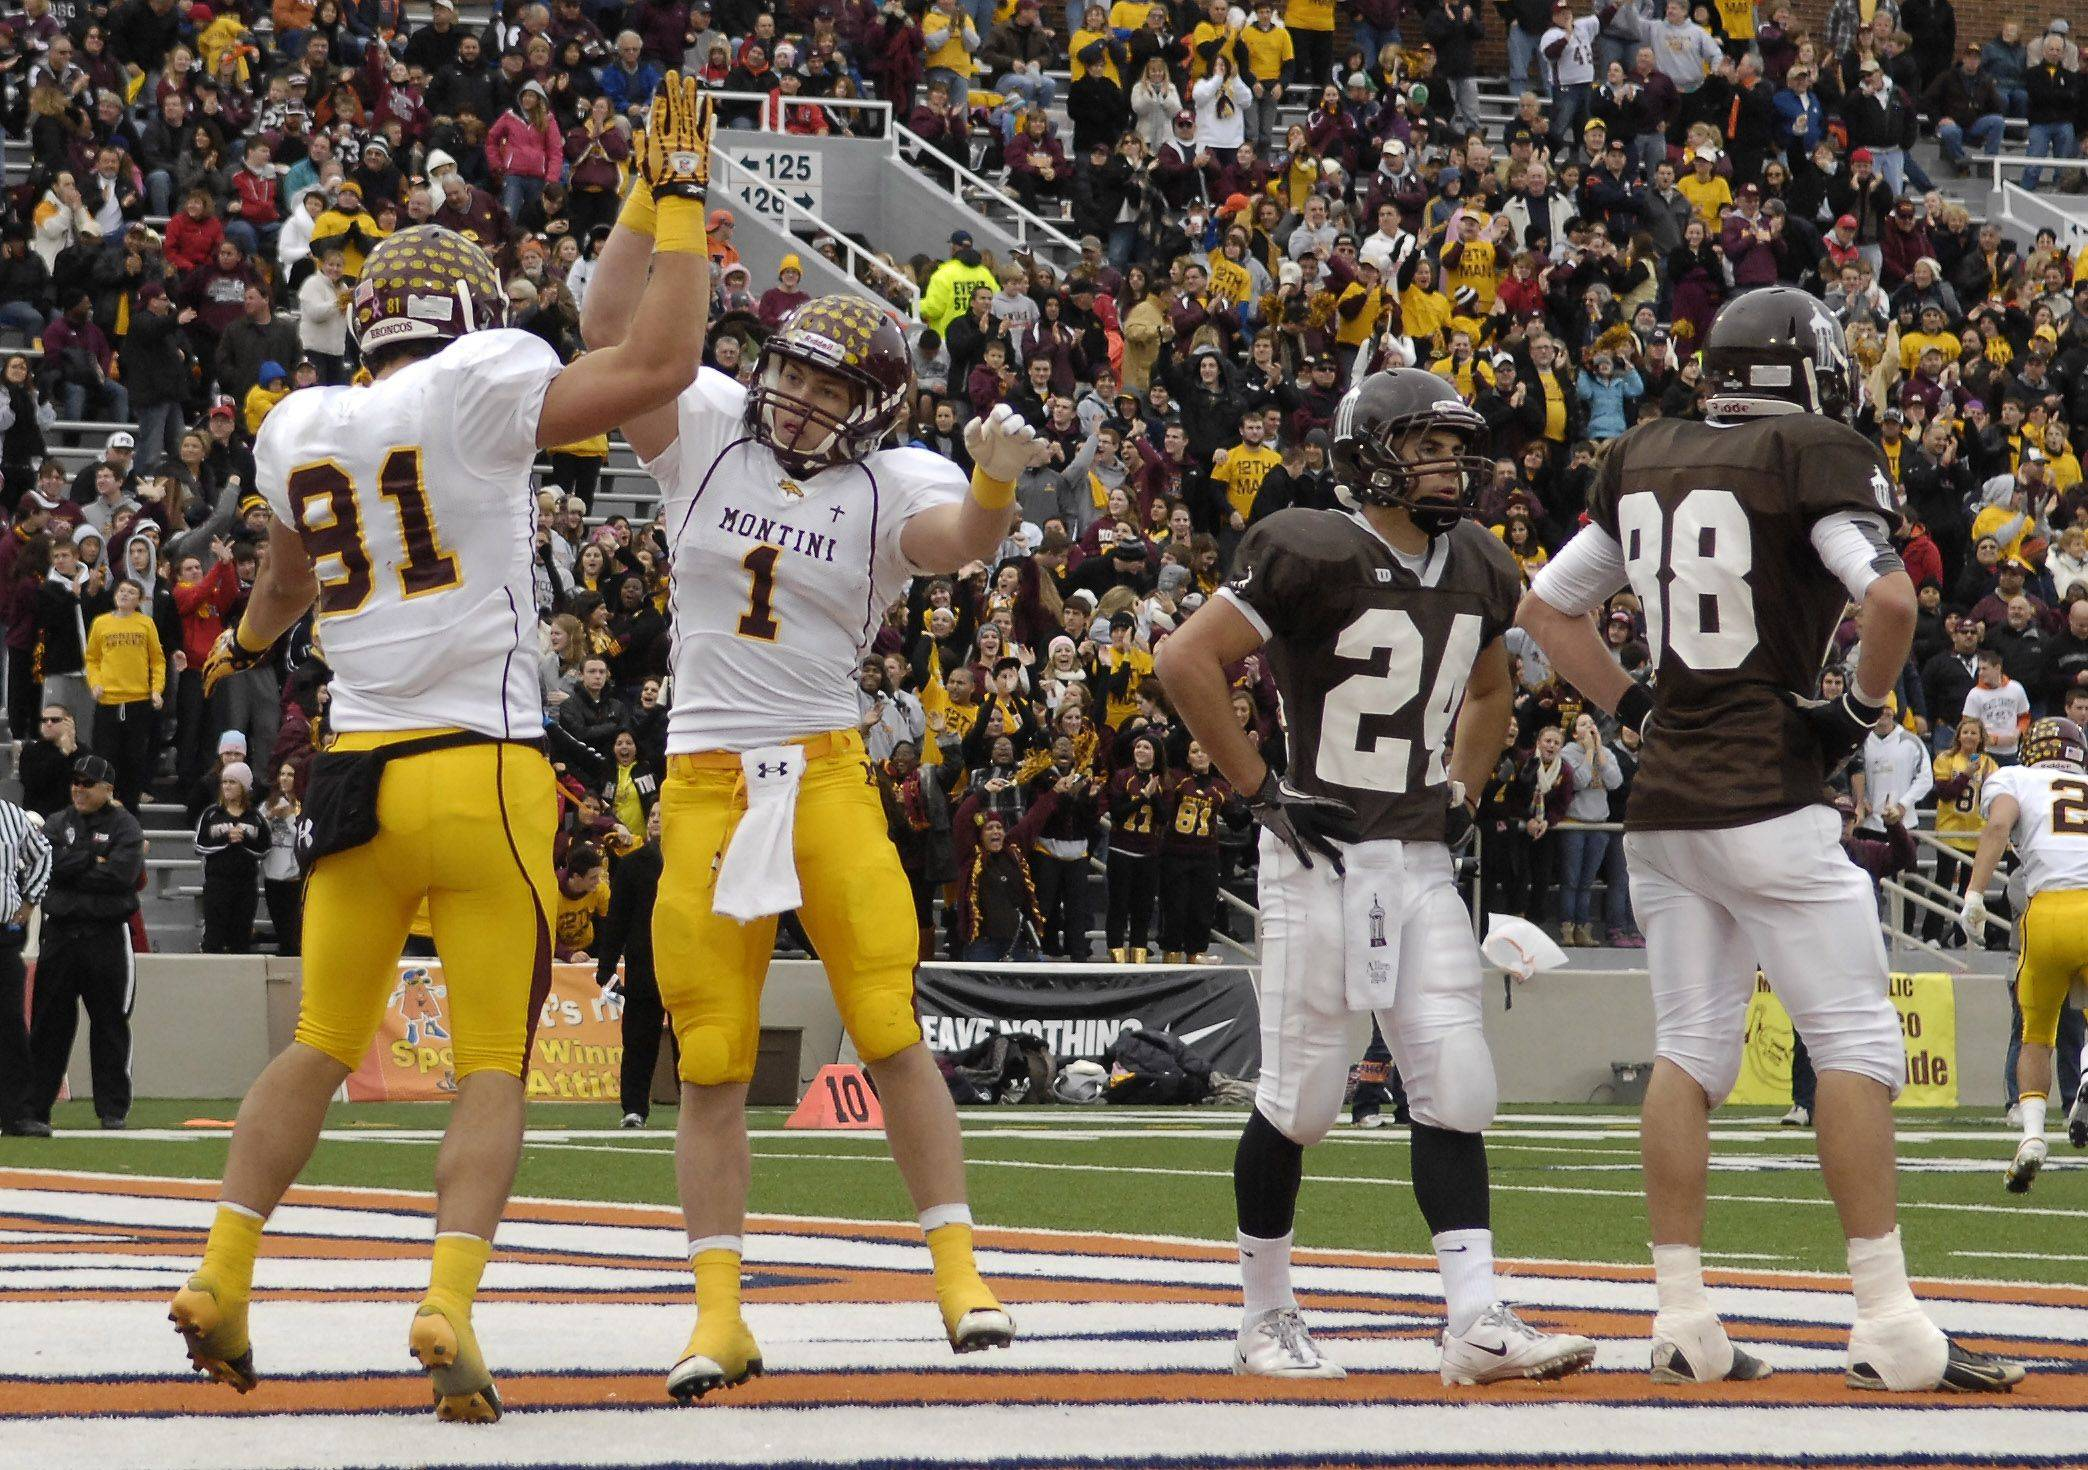 Montini's Jordan Westerkamp (81) and teammate Joseph Borsellino celebrate one of Westerkamp's five touchdown receptions during the Class 5A state championship in Champaign on Saturday.